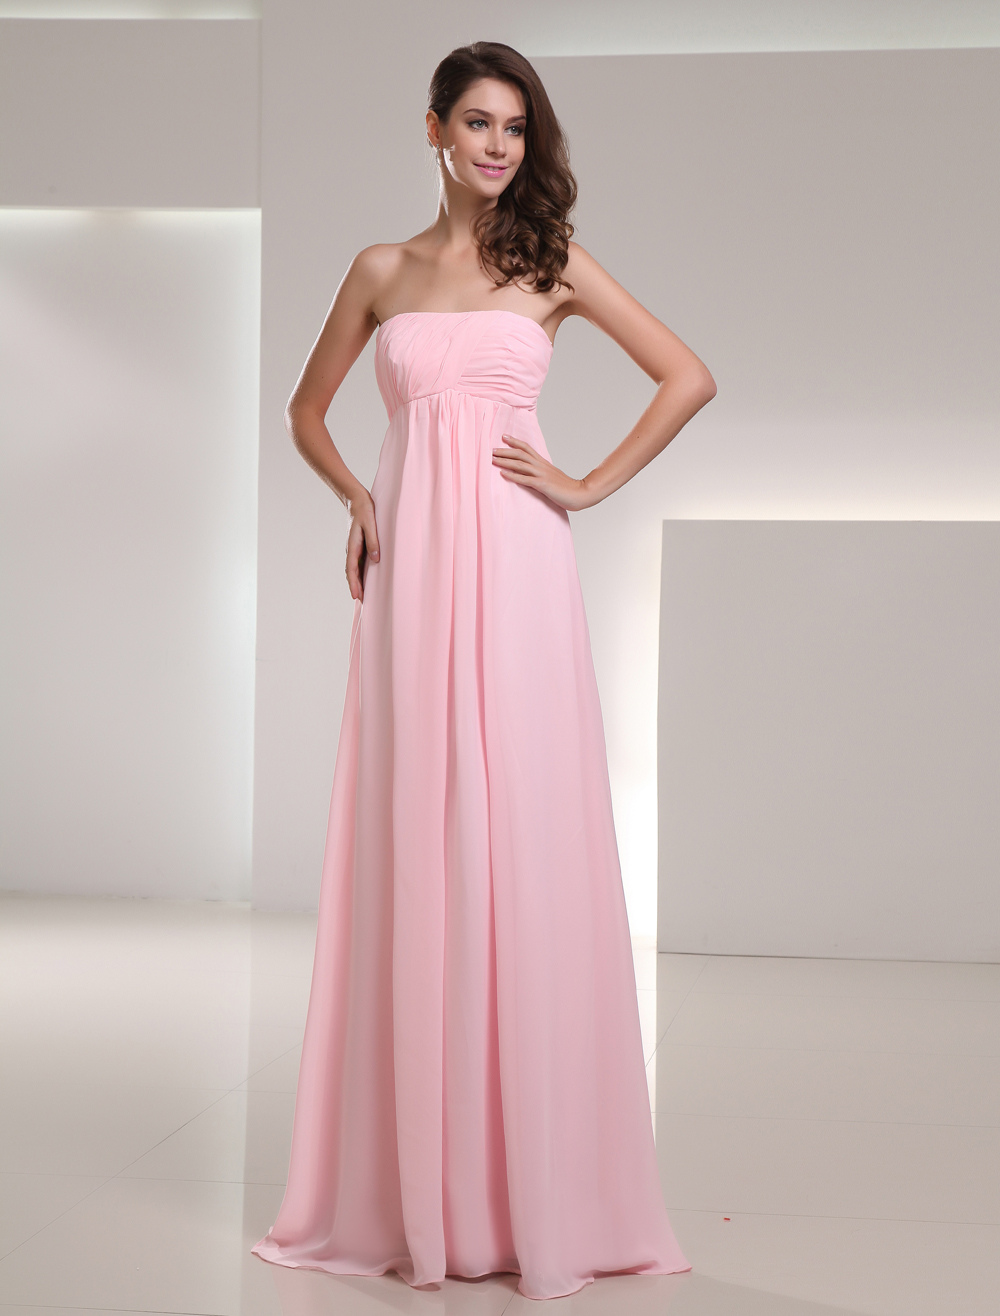 Empire Waist Pink Chiffon Ruched Strapless Floor-Length Fashion Bridesmaid Dress